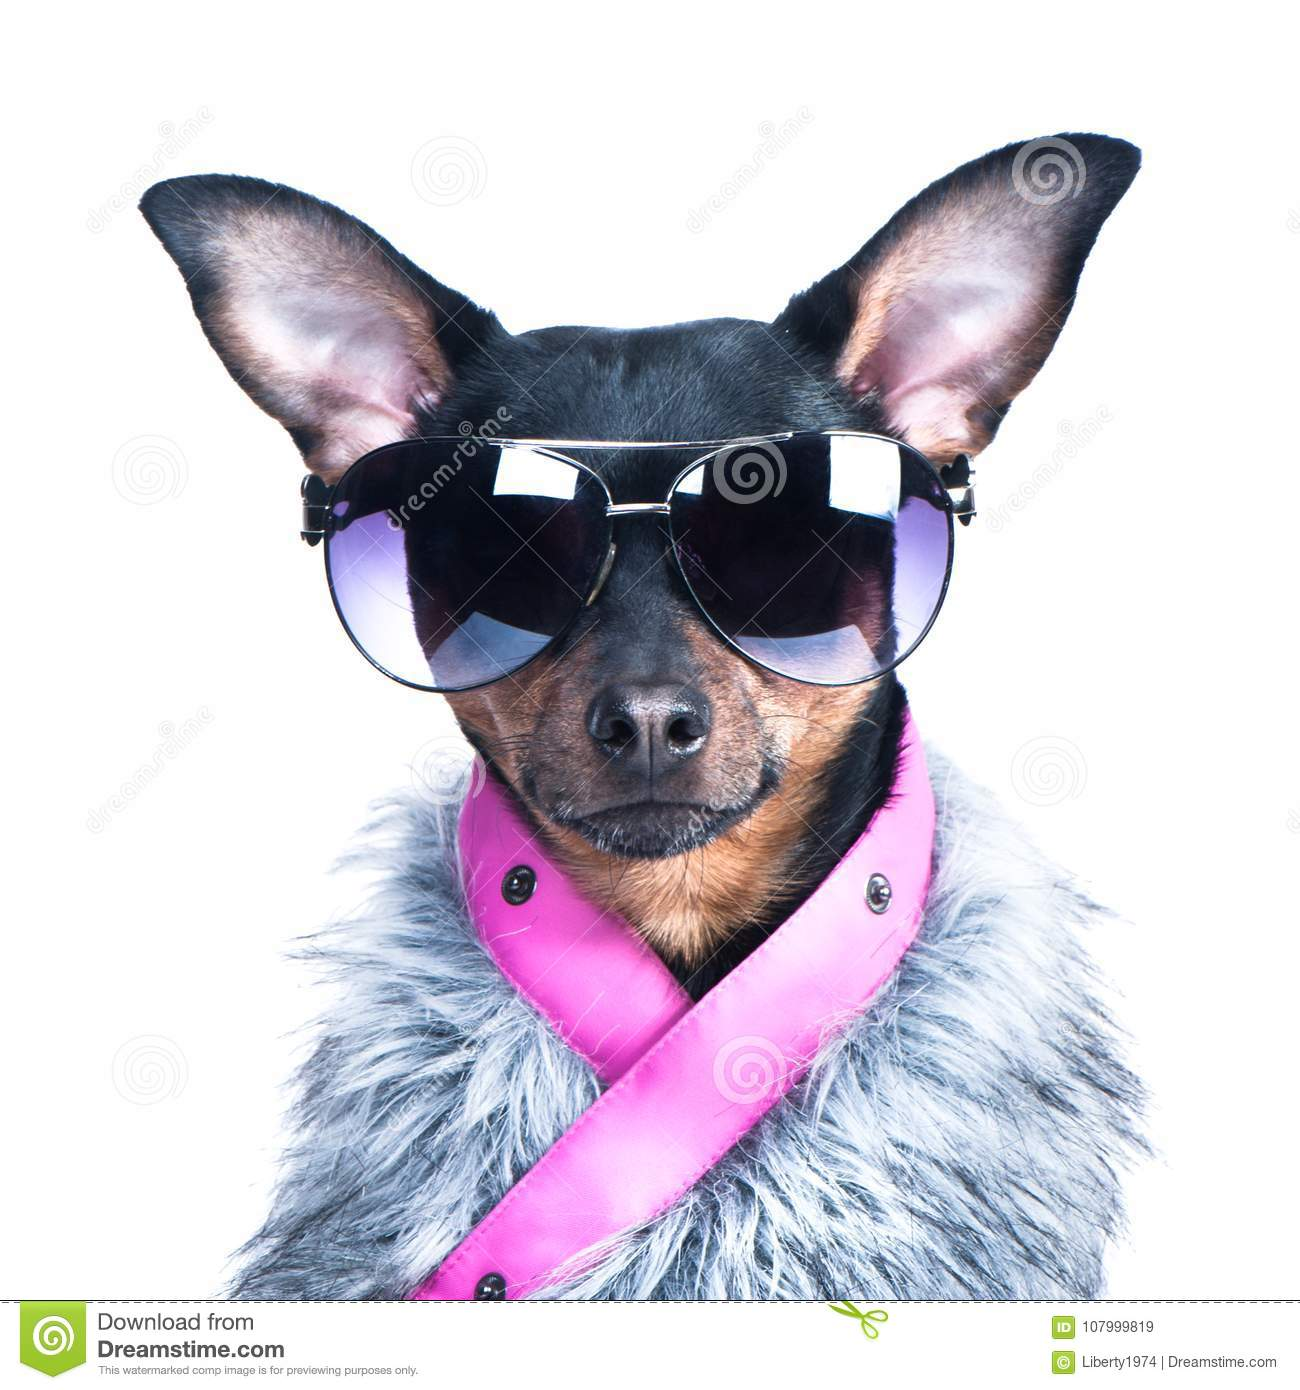 Dog In The Clothes Of A Skier, A Fur Jacket And Glasses